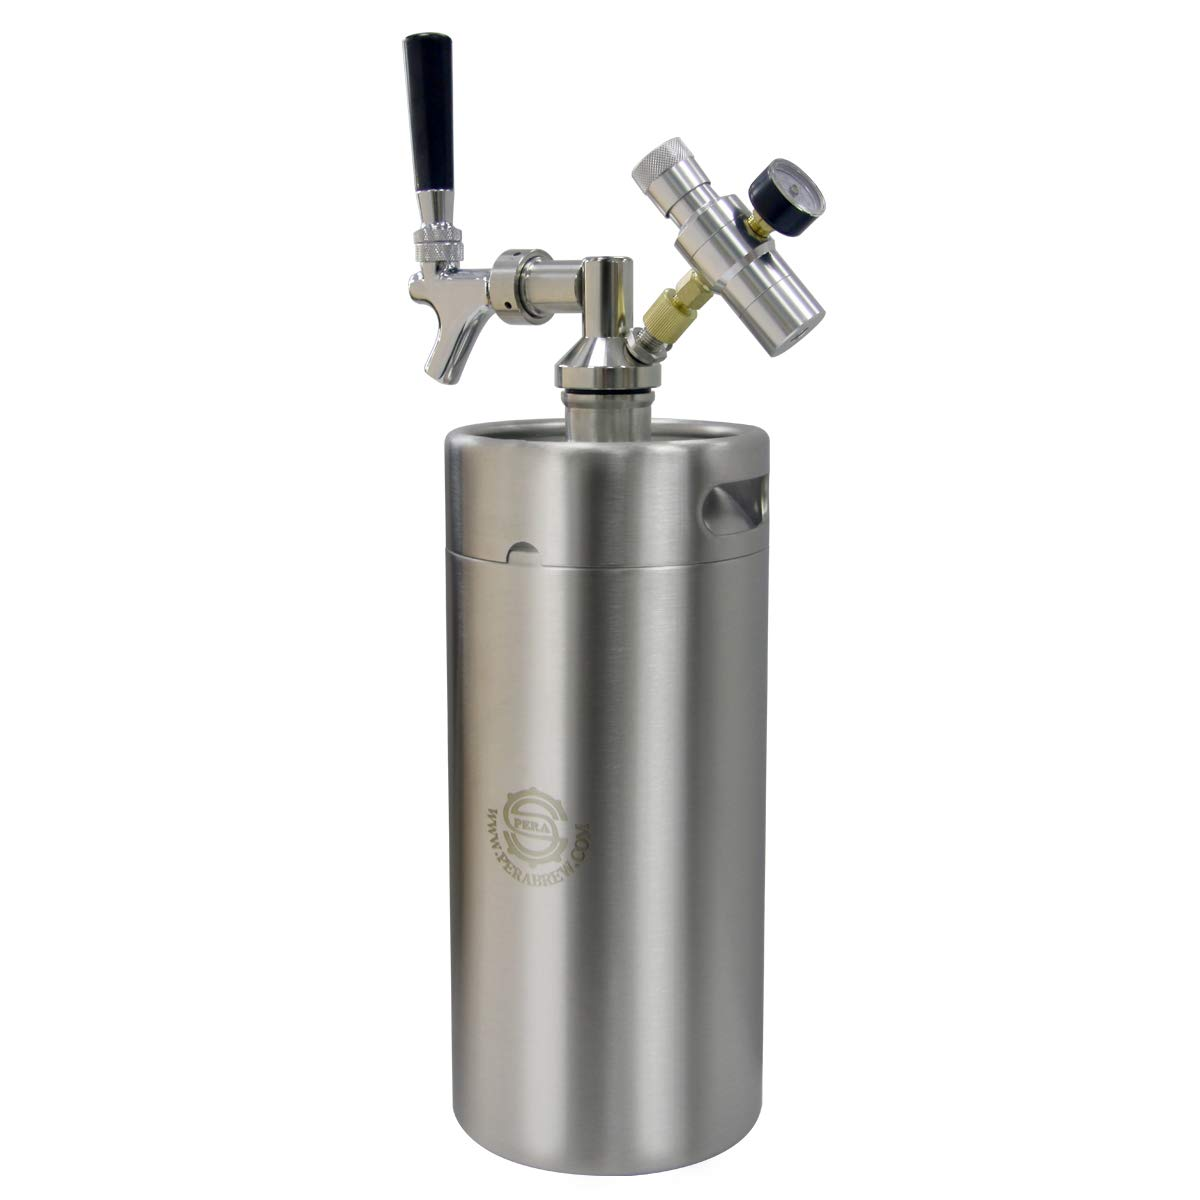 PERA Beer Mini Kegs 128 OZ for Craft beer Dispenser CO2 regulator with beer faucet taps